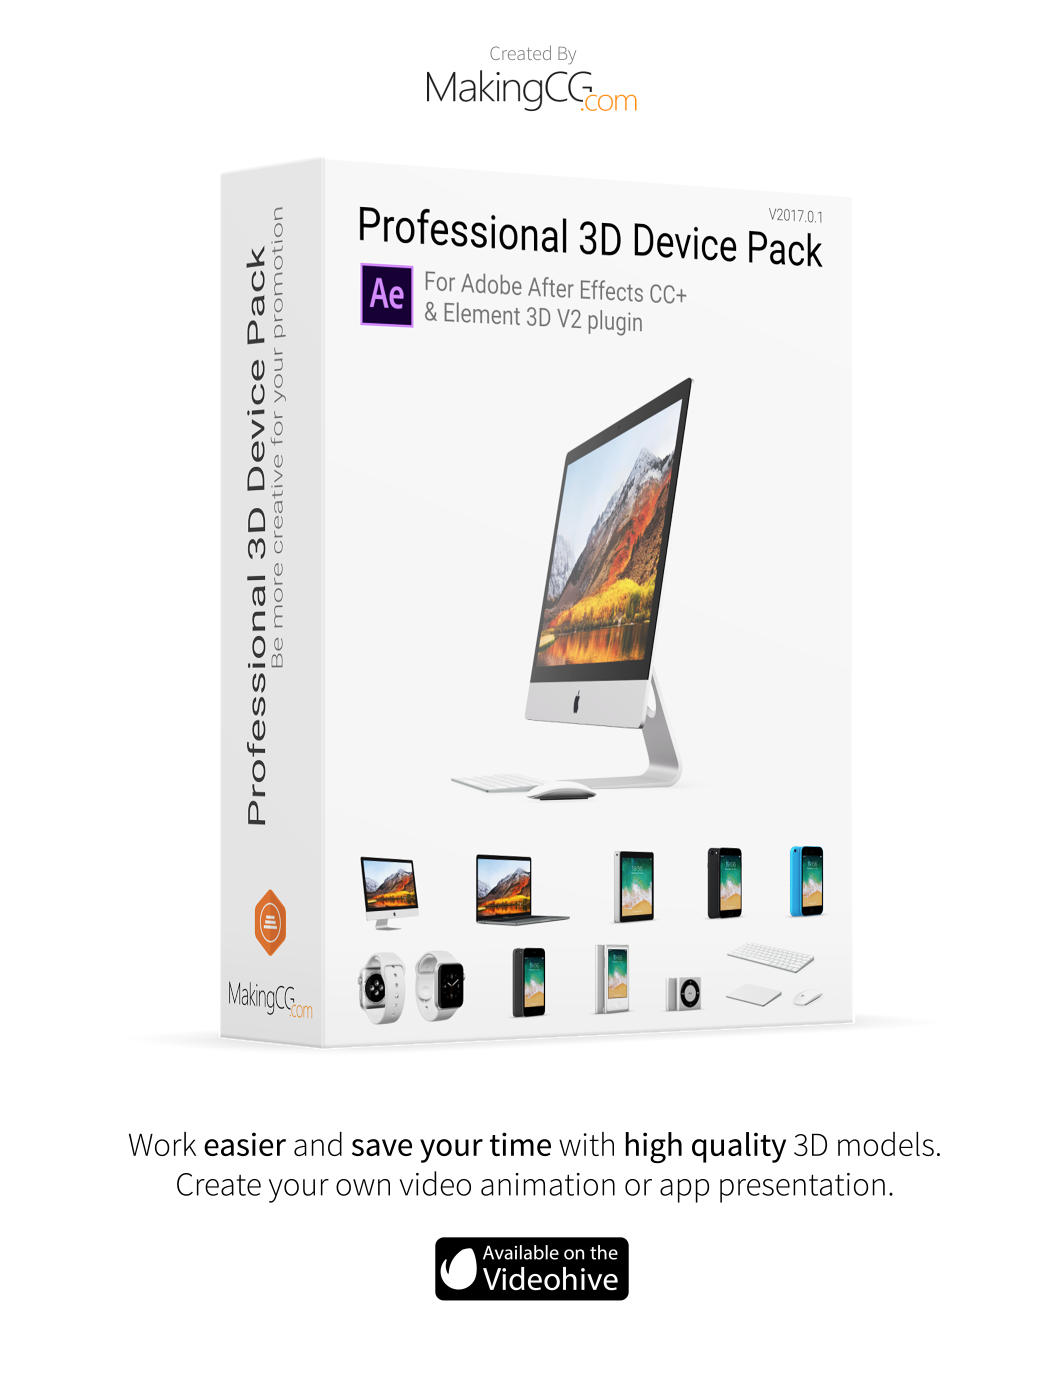 Professional Apple 3D Device Pack Promo Wallpaper